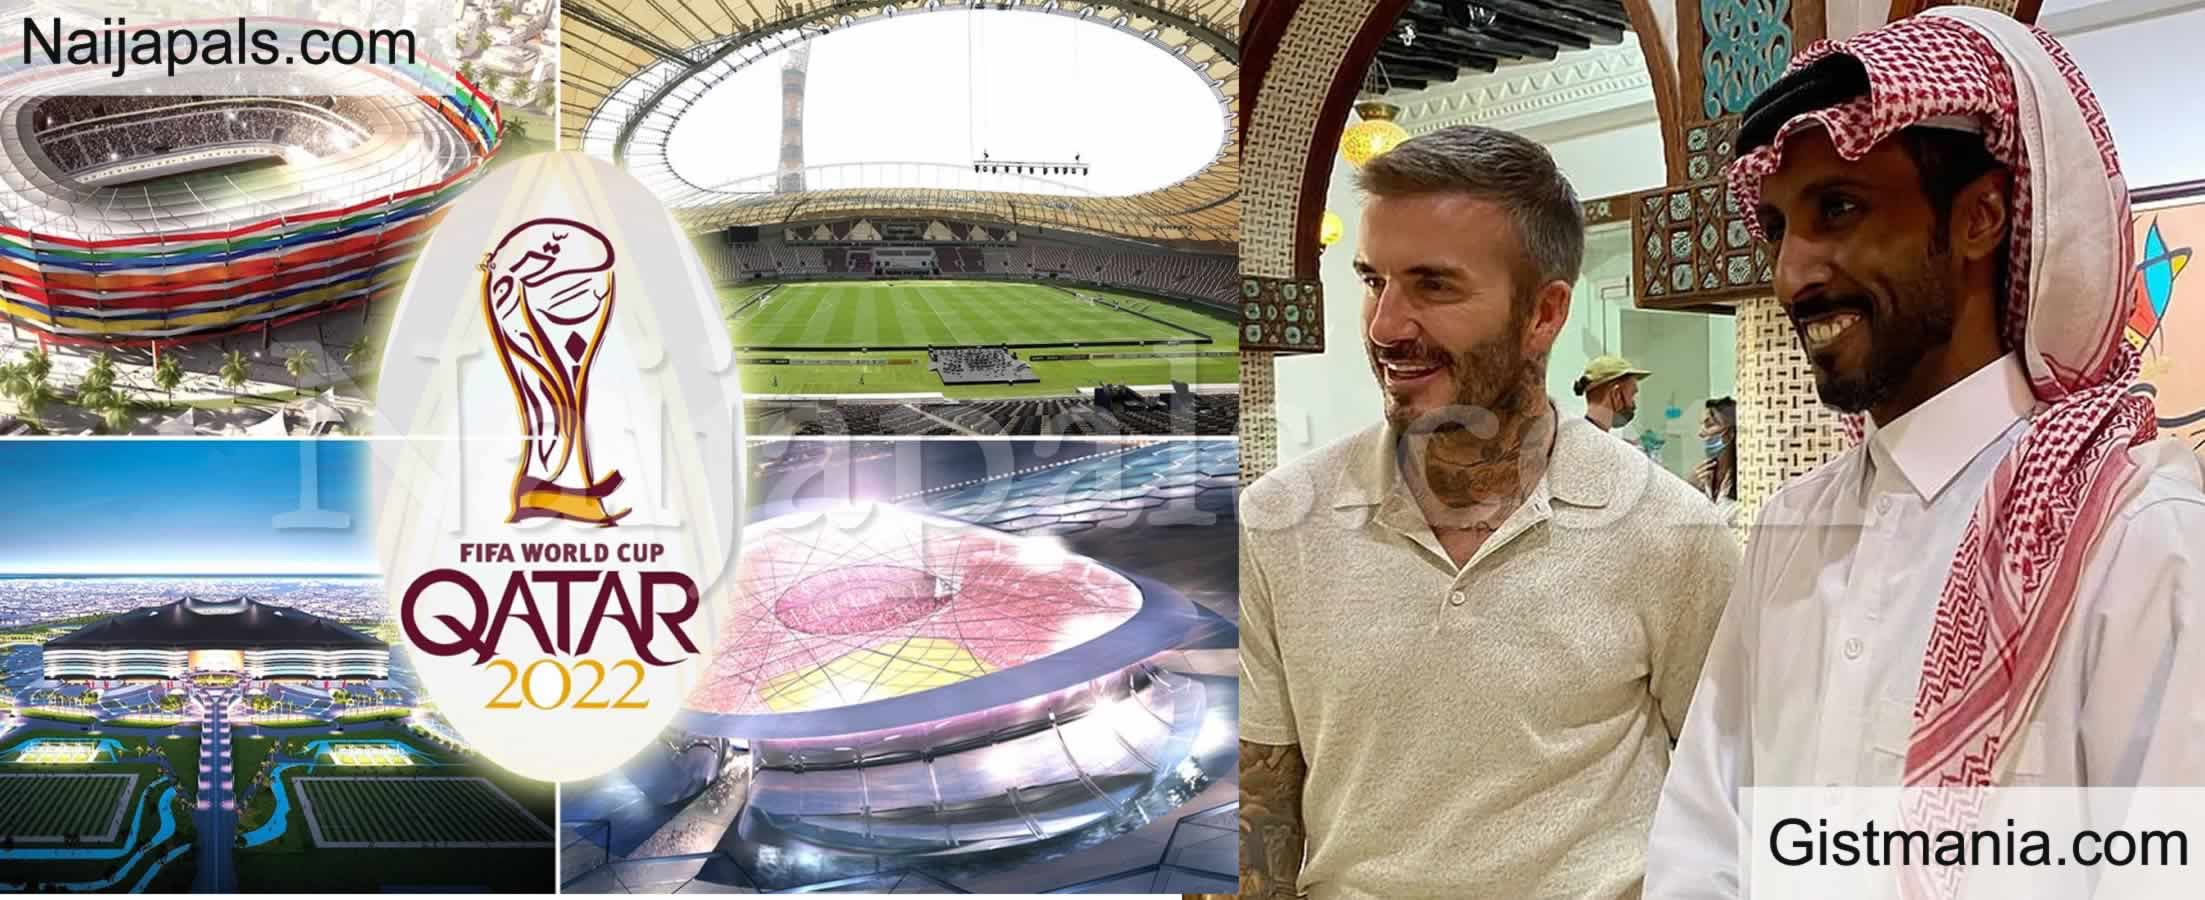 <img alt='.' class='lazyload' data-src='https://img.gistmania.com/emot/soccer.gif' /> <b>David Beckham To Become Face Of Qatar 2022 FIFA World Cup After Signing A Deal Of £150m</b>